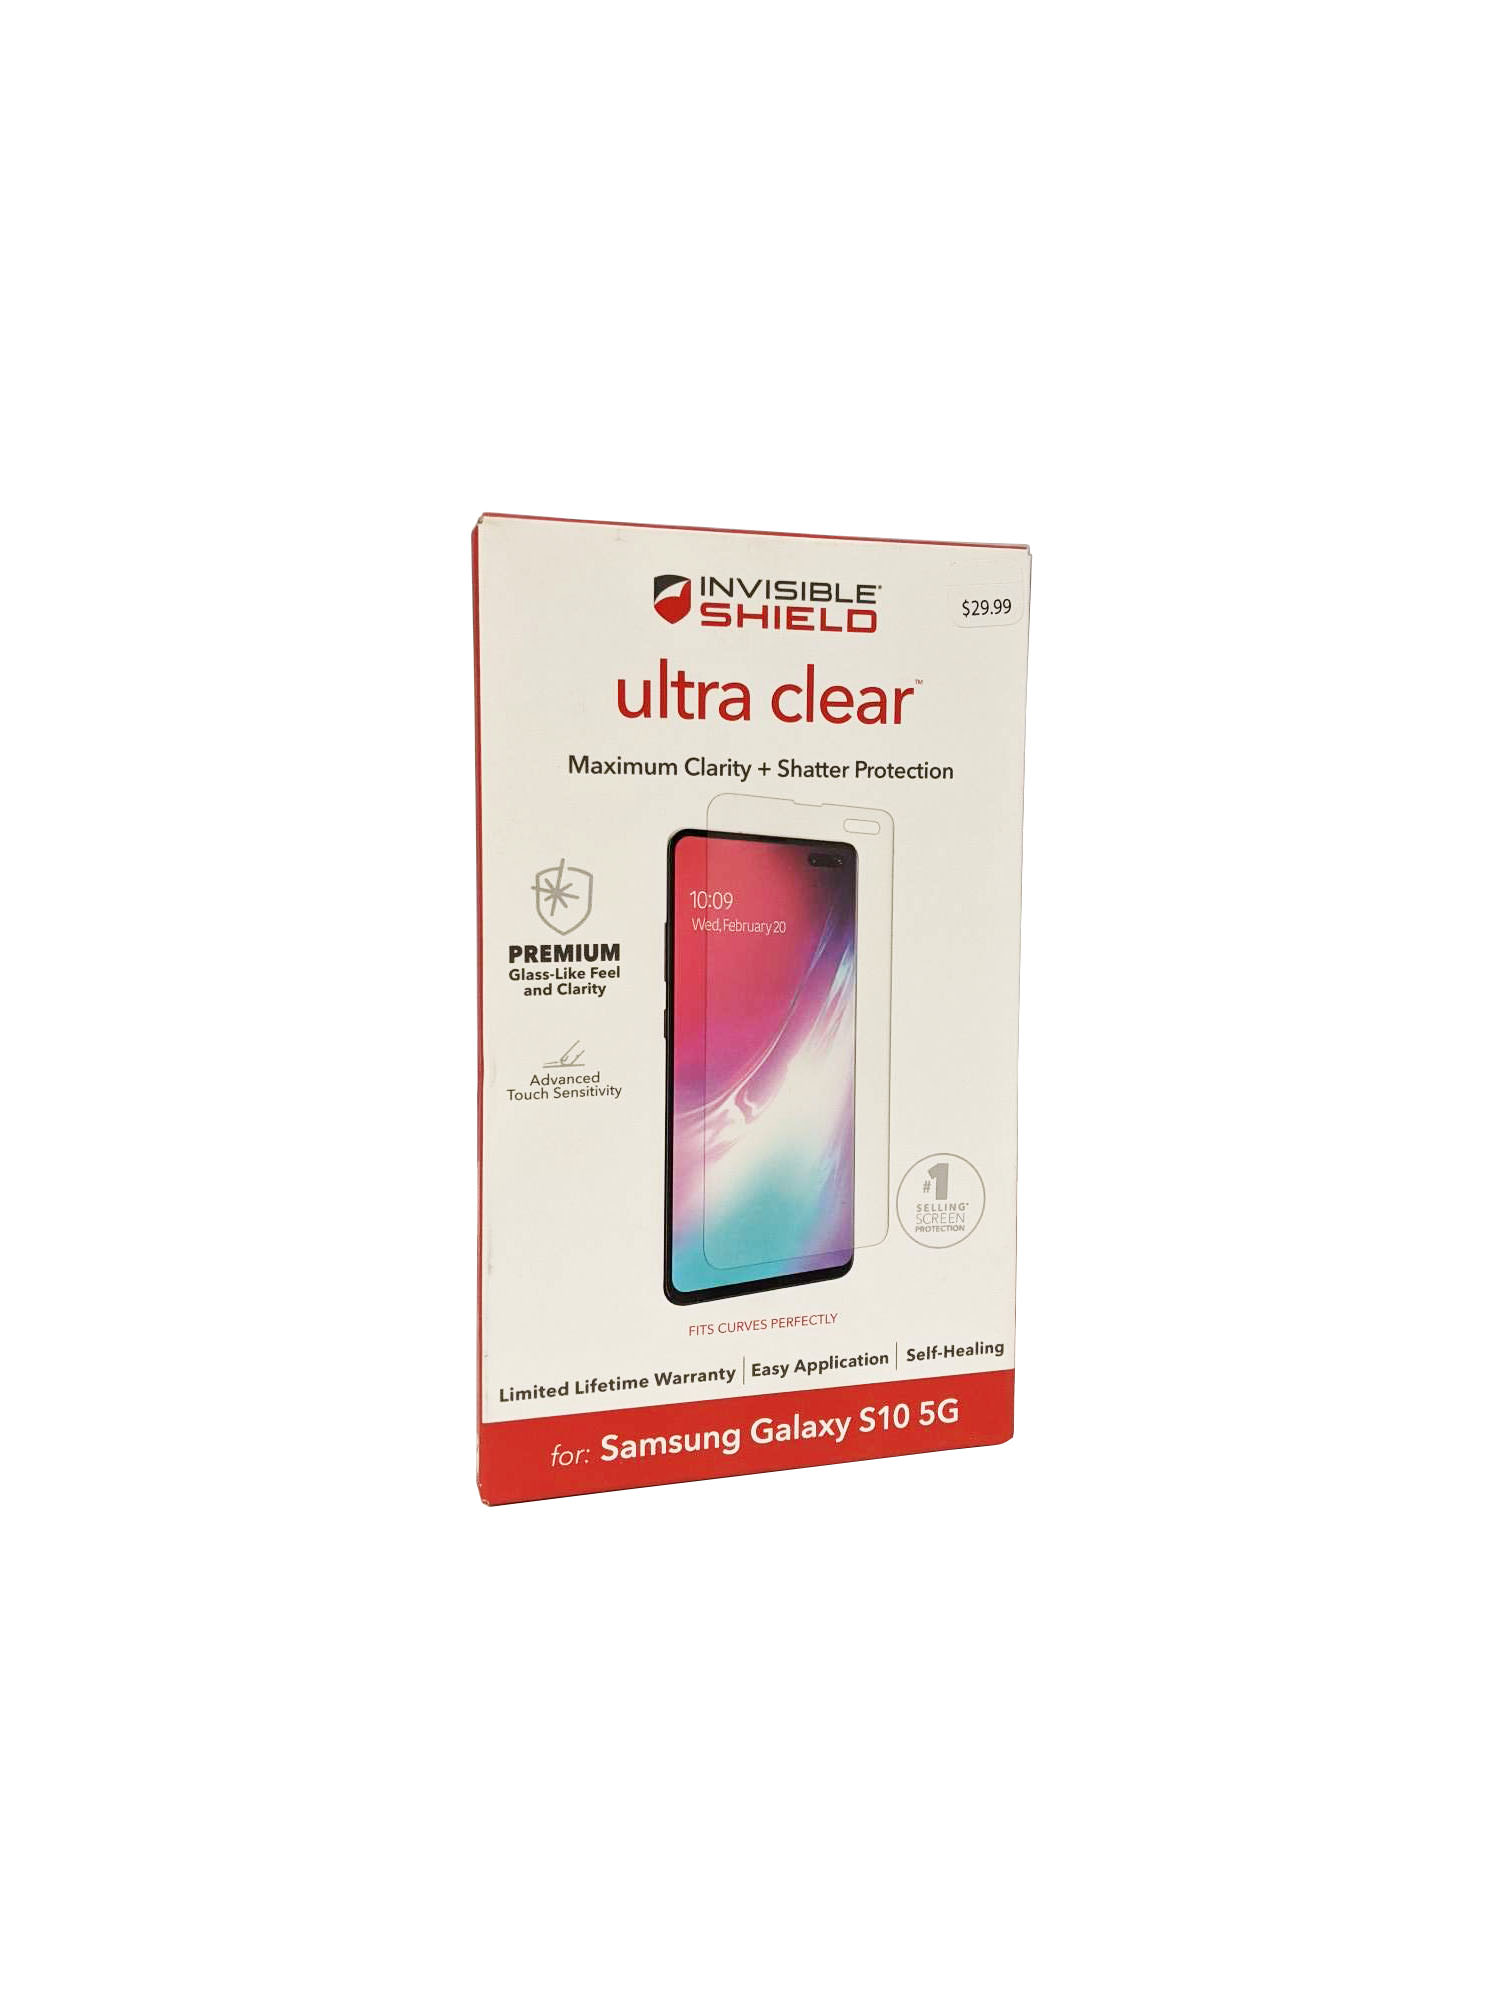 ZAGG InvisibleShield Ultra Clear Screen Protector for Galaxy S10 5G - Clear